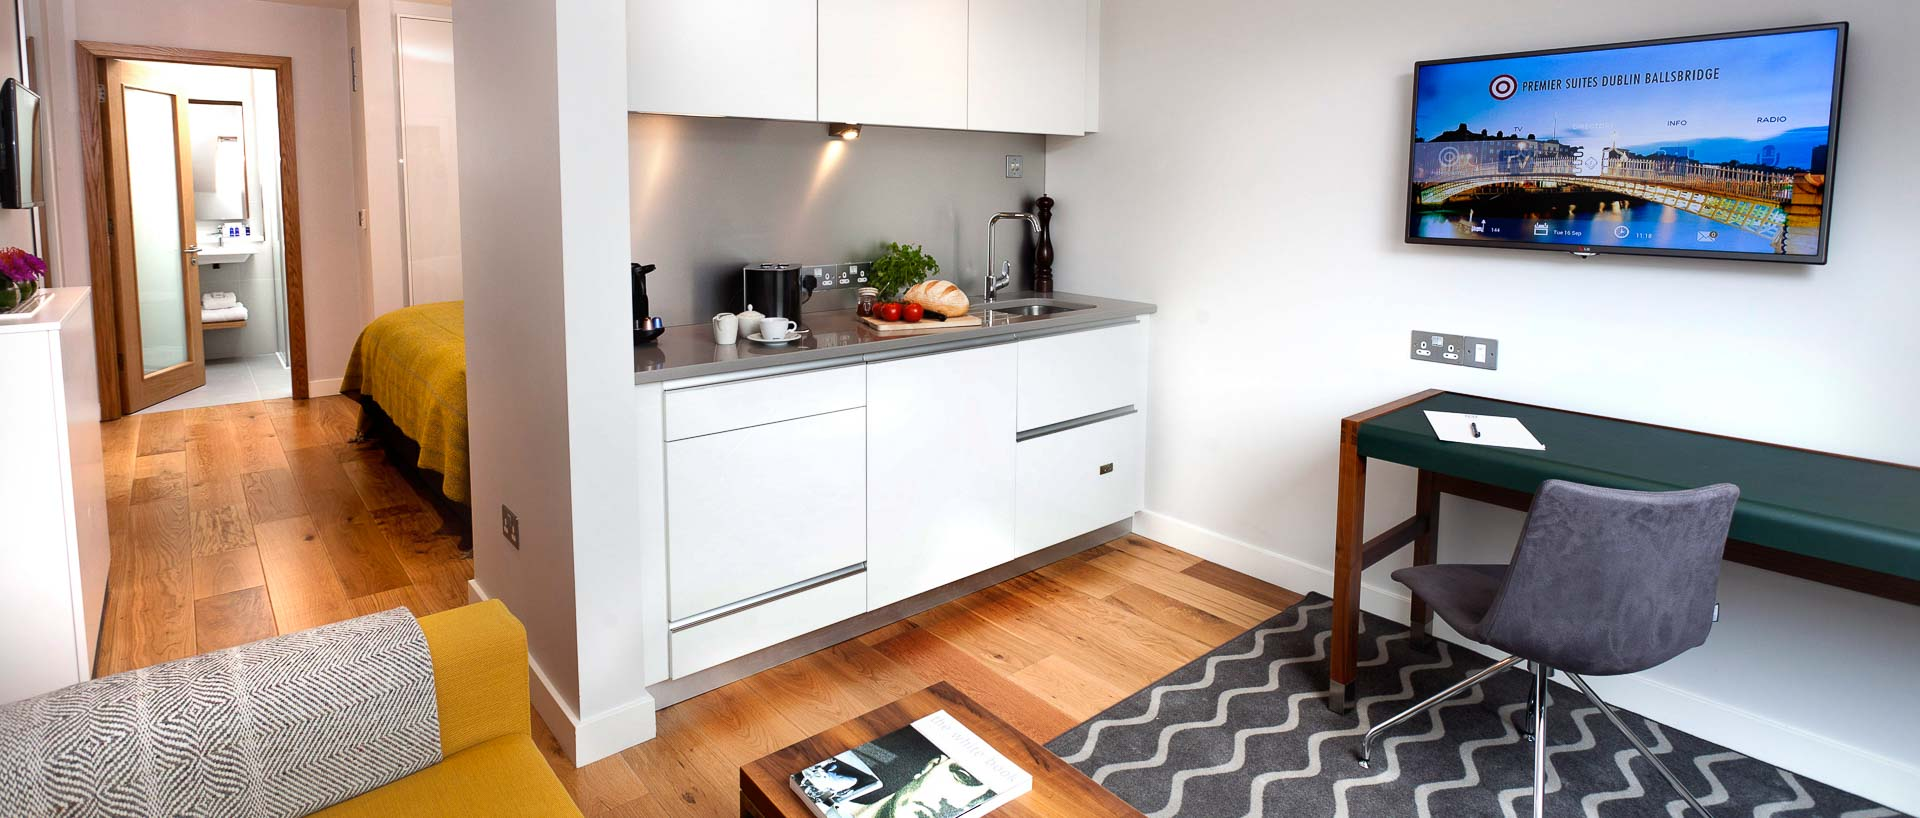 Kitchen in executive studio suite in PREMIER SUITES PLUS Dublin Ballsbridge